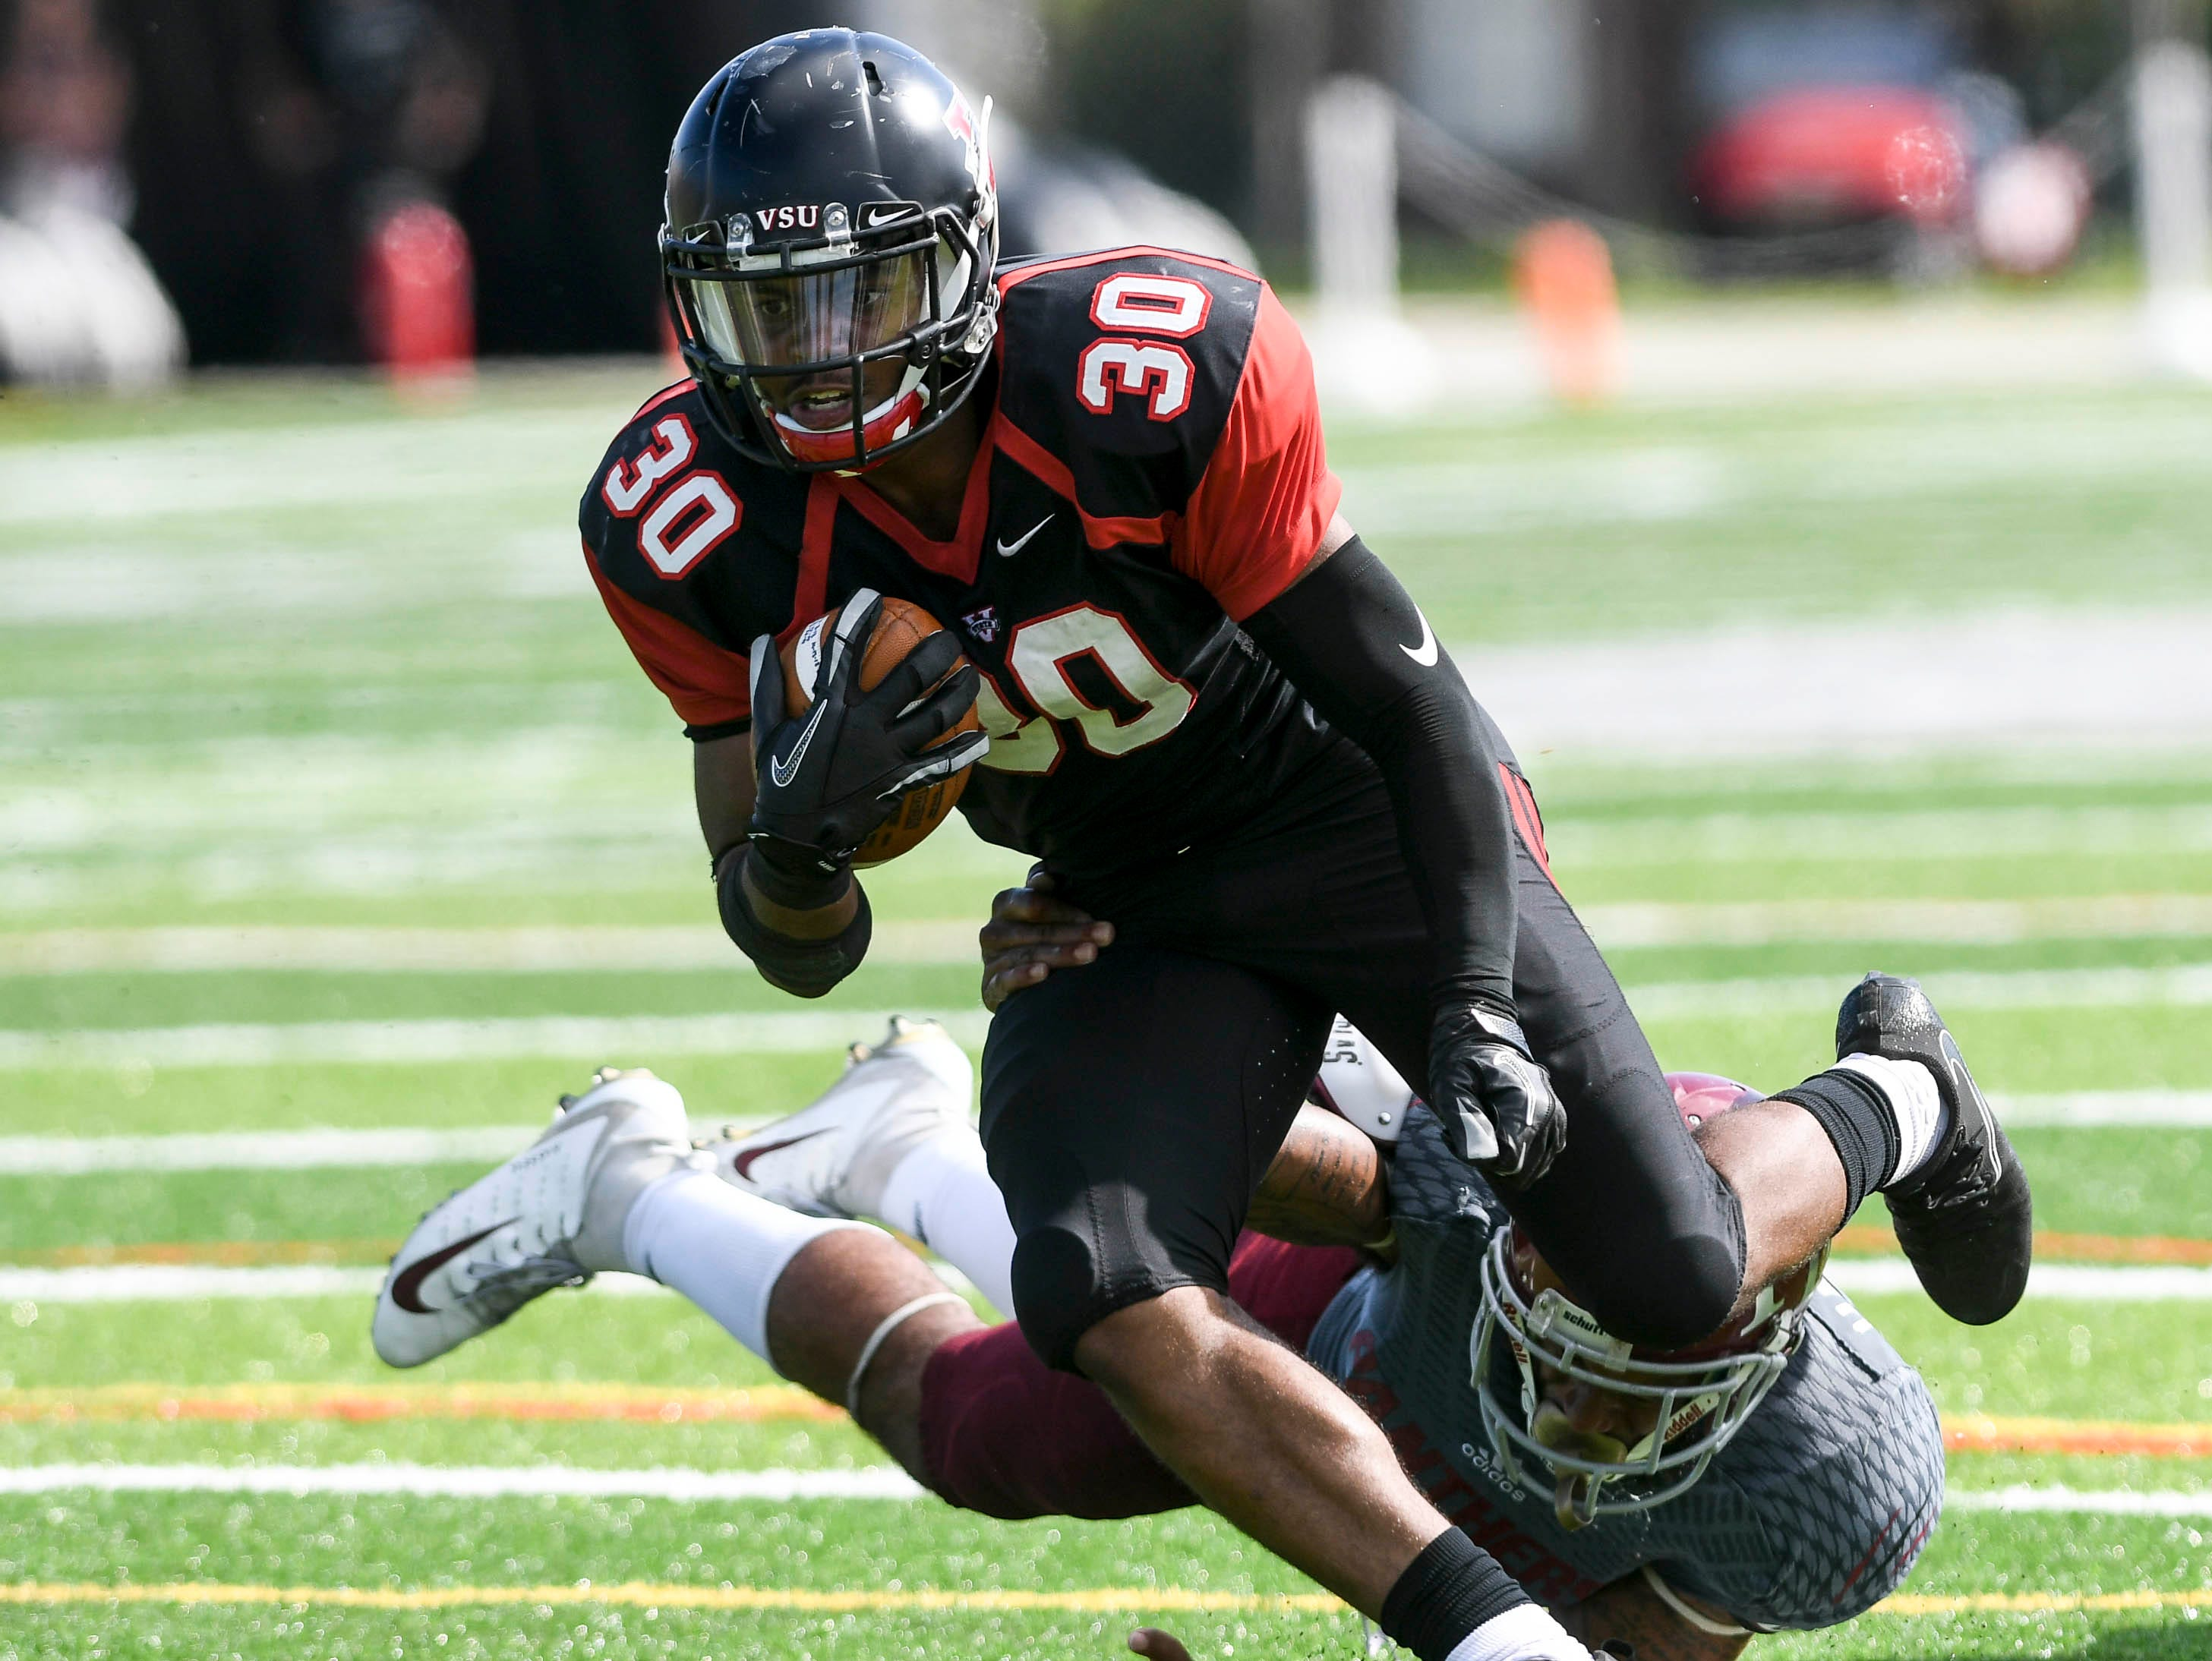 Seth McGill of Valdosta State gets past Florida Tech's JT Hassell and scores a touchdown during Saturday's game.